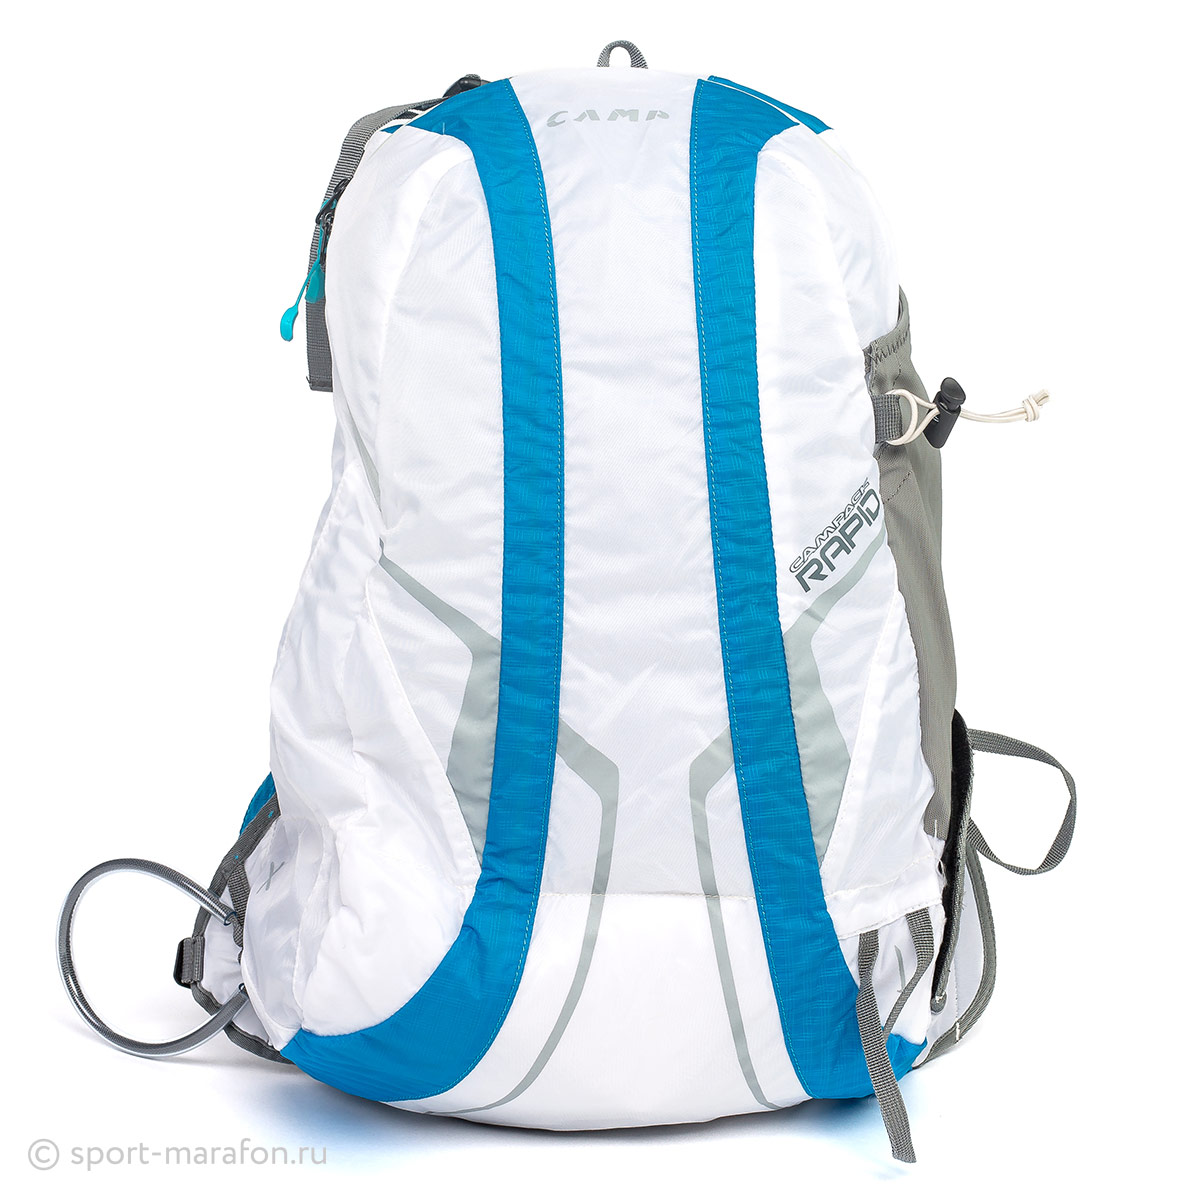 Рюкзак Camp Rapid 20 White/Light Blue - Фото 2 большая